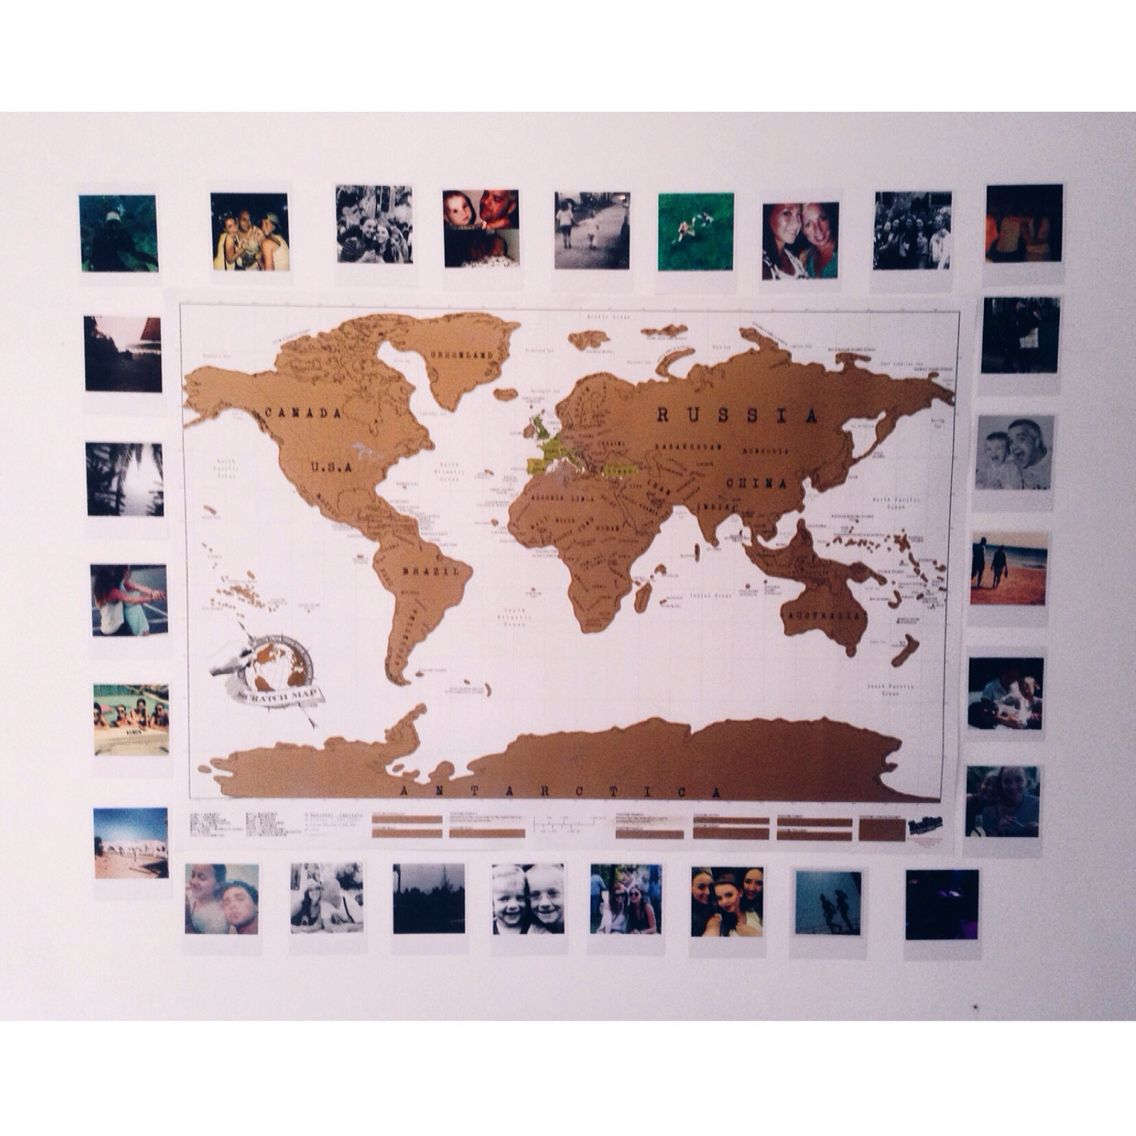 Scratch map and polaroids room ideas pinterest room ideas and room scratch map and polaroids gumiabroncs Images